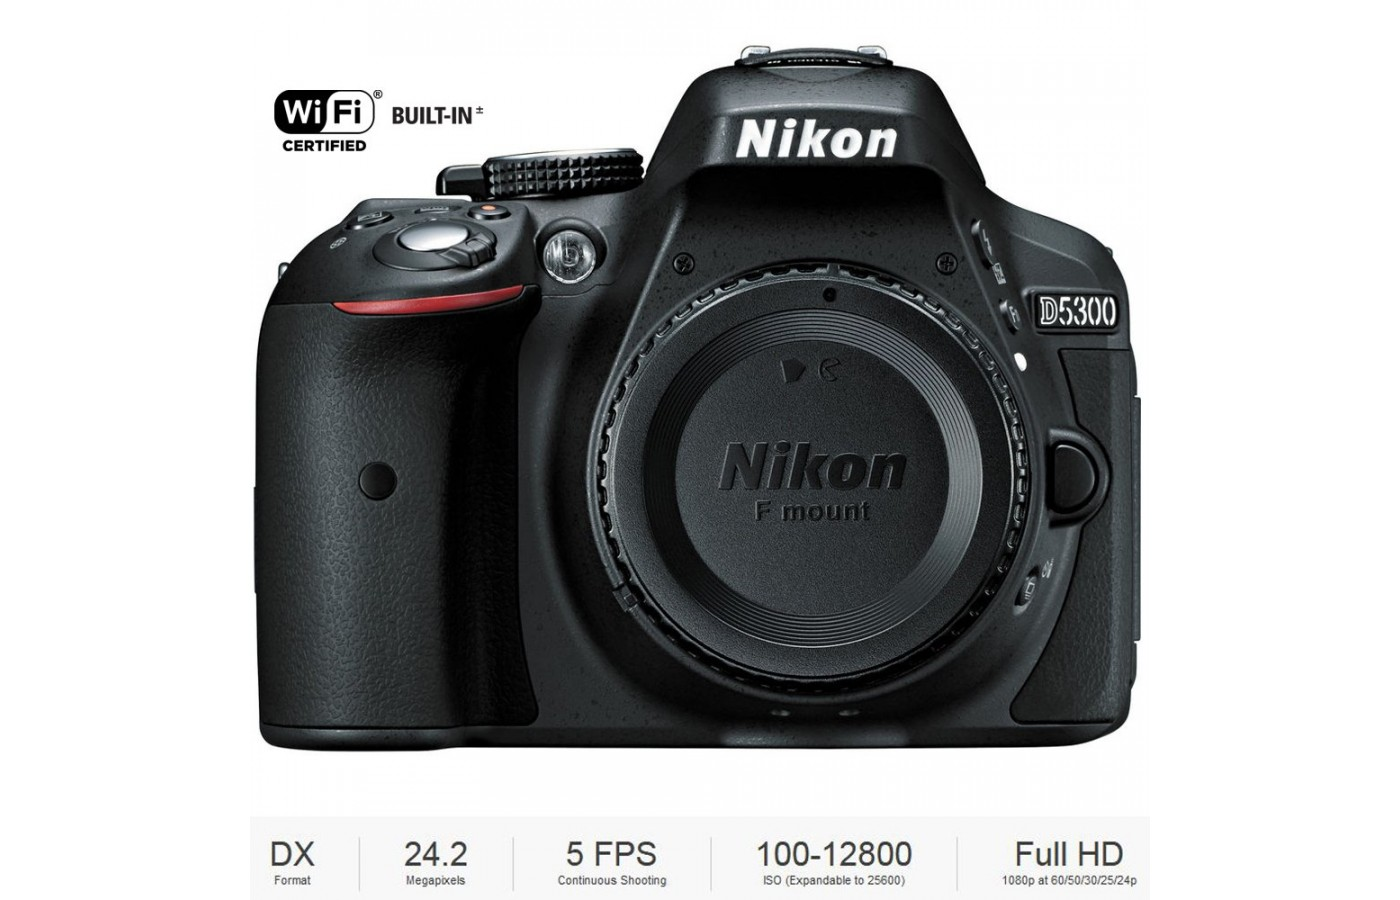 The D7500 is a camera that has nearly all of the combined advantages of the D7200 and D500.